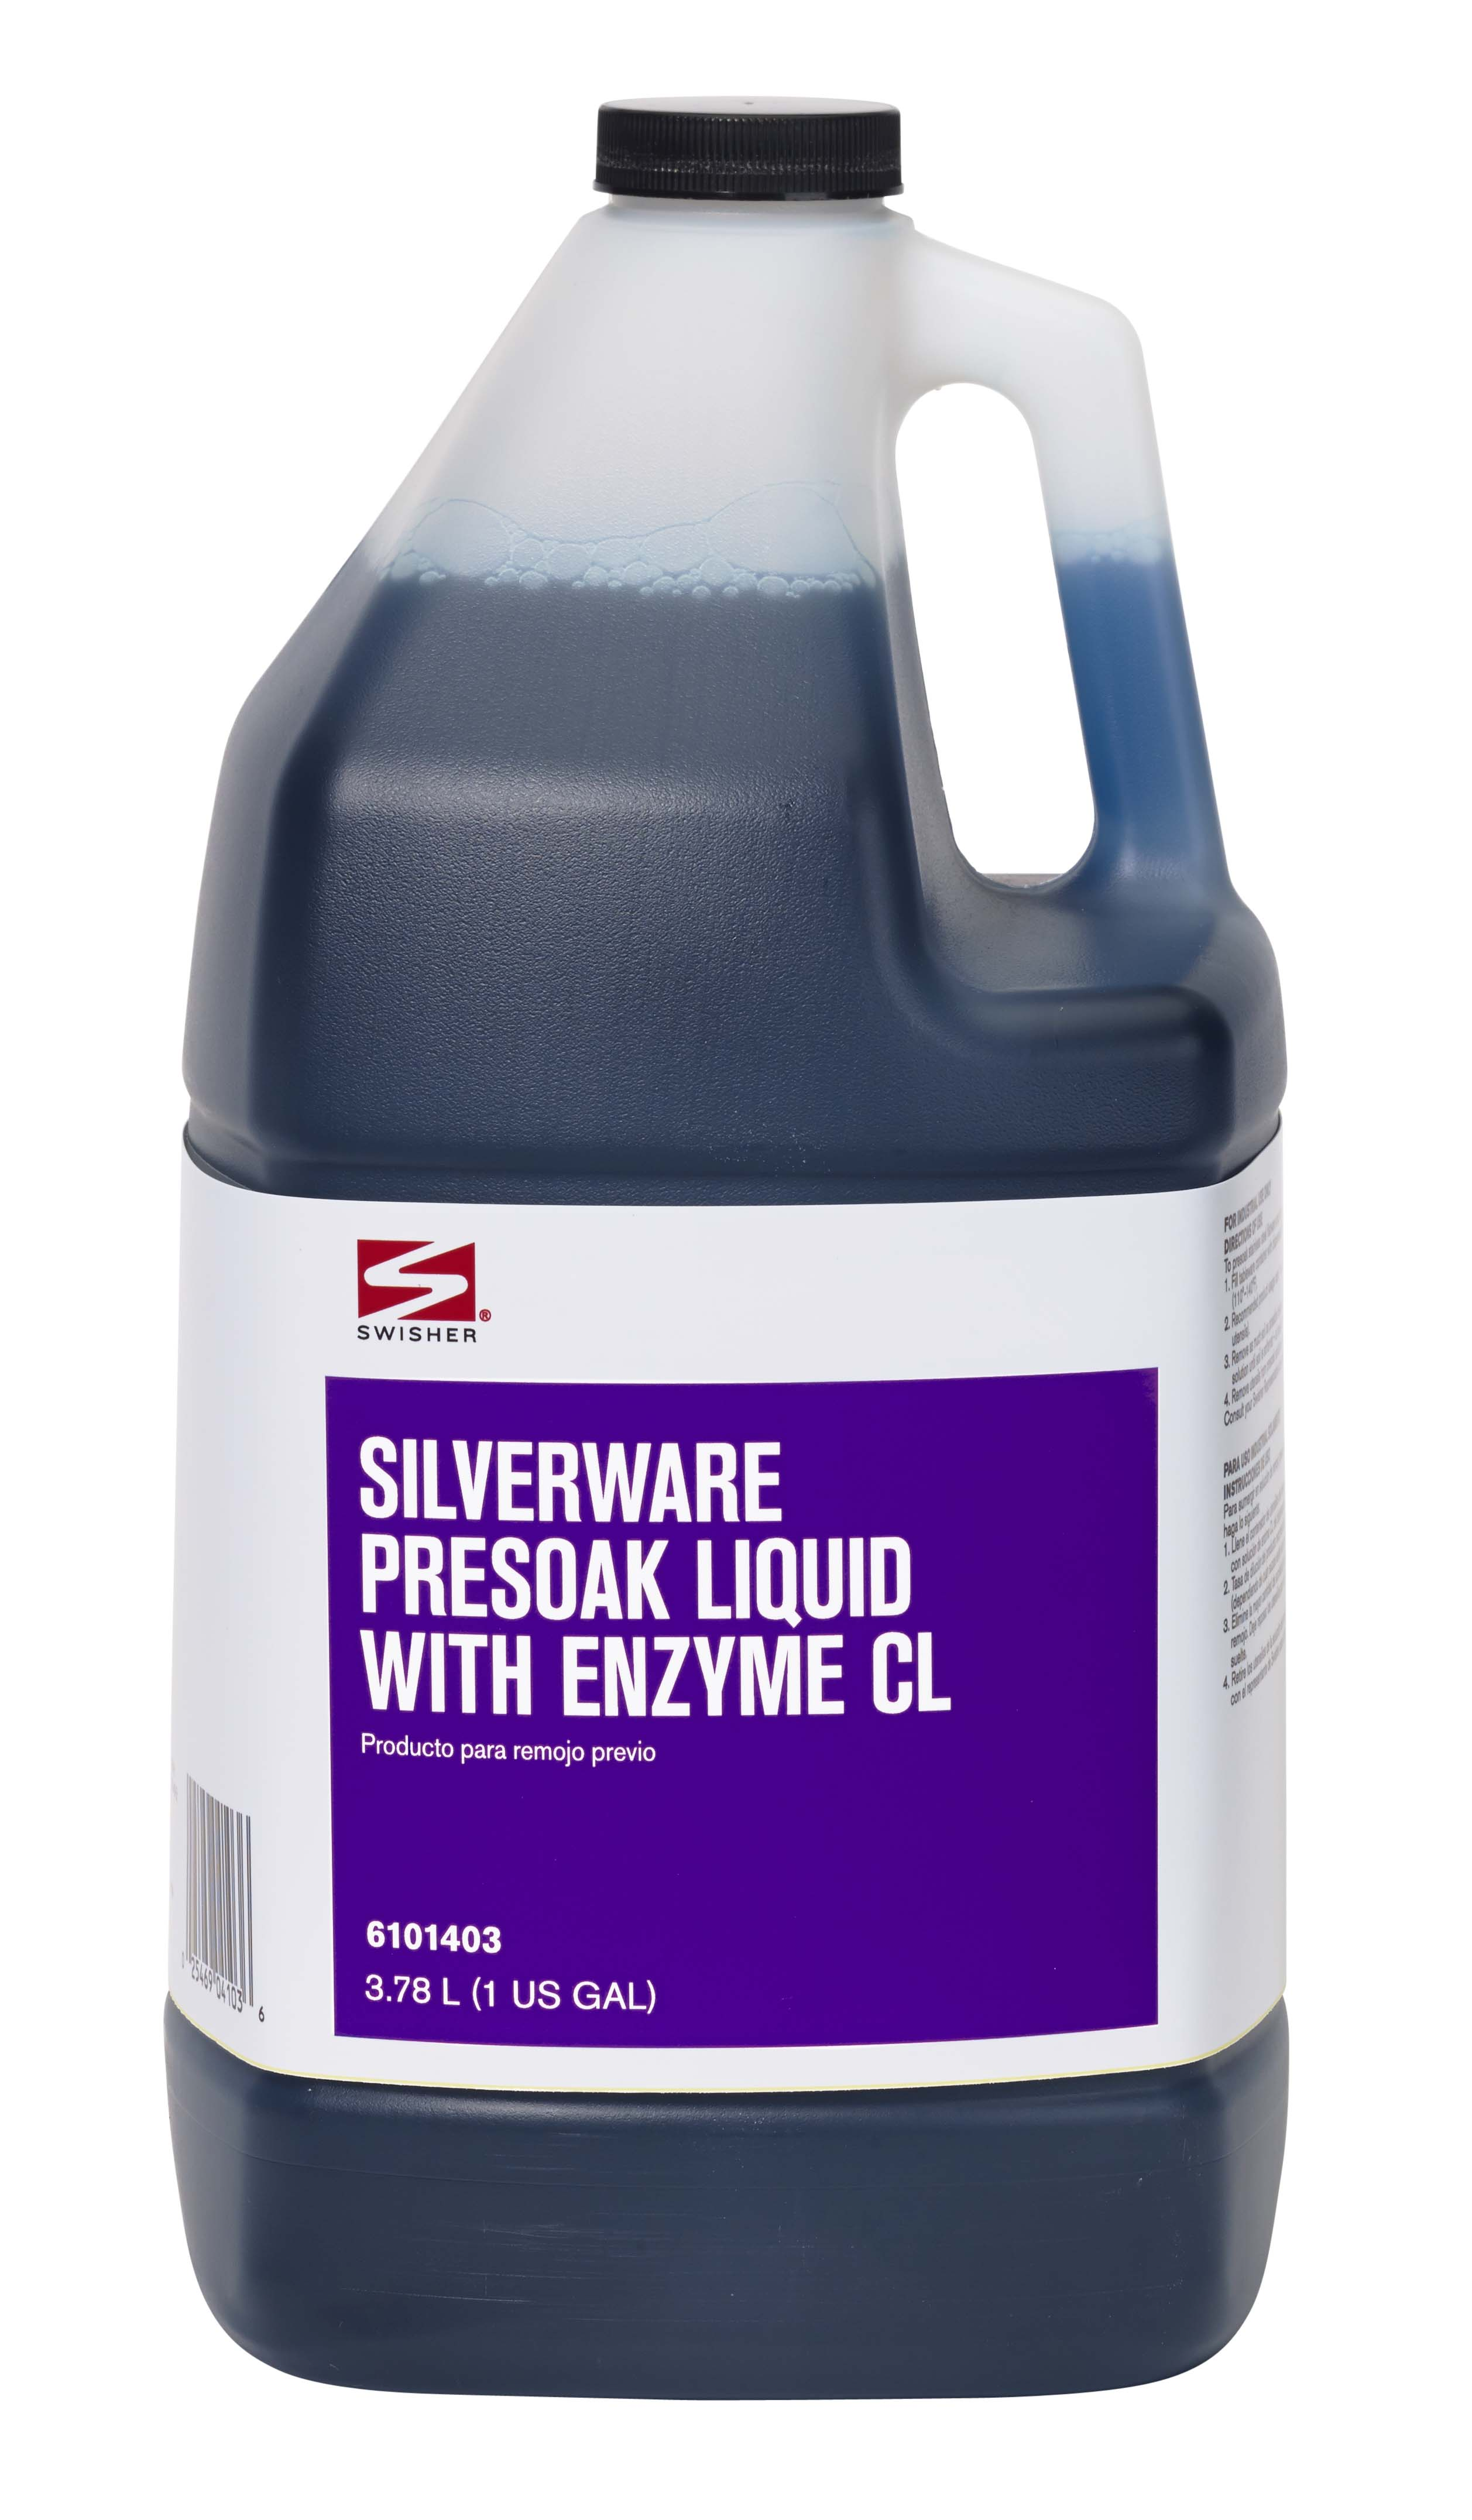 Swisher Silverware Presoak Liquid with Enzyme CL